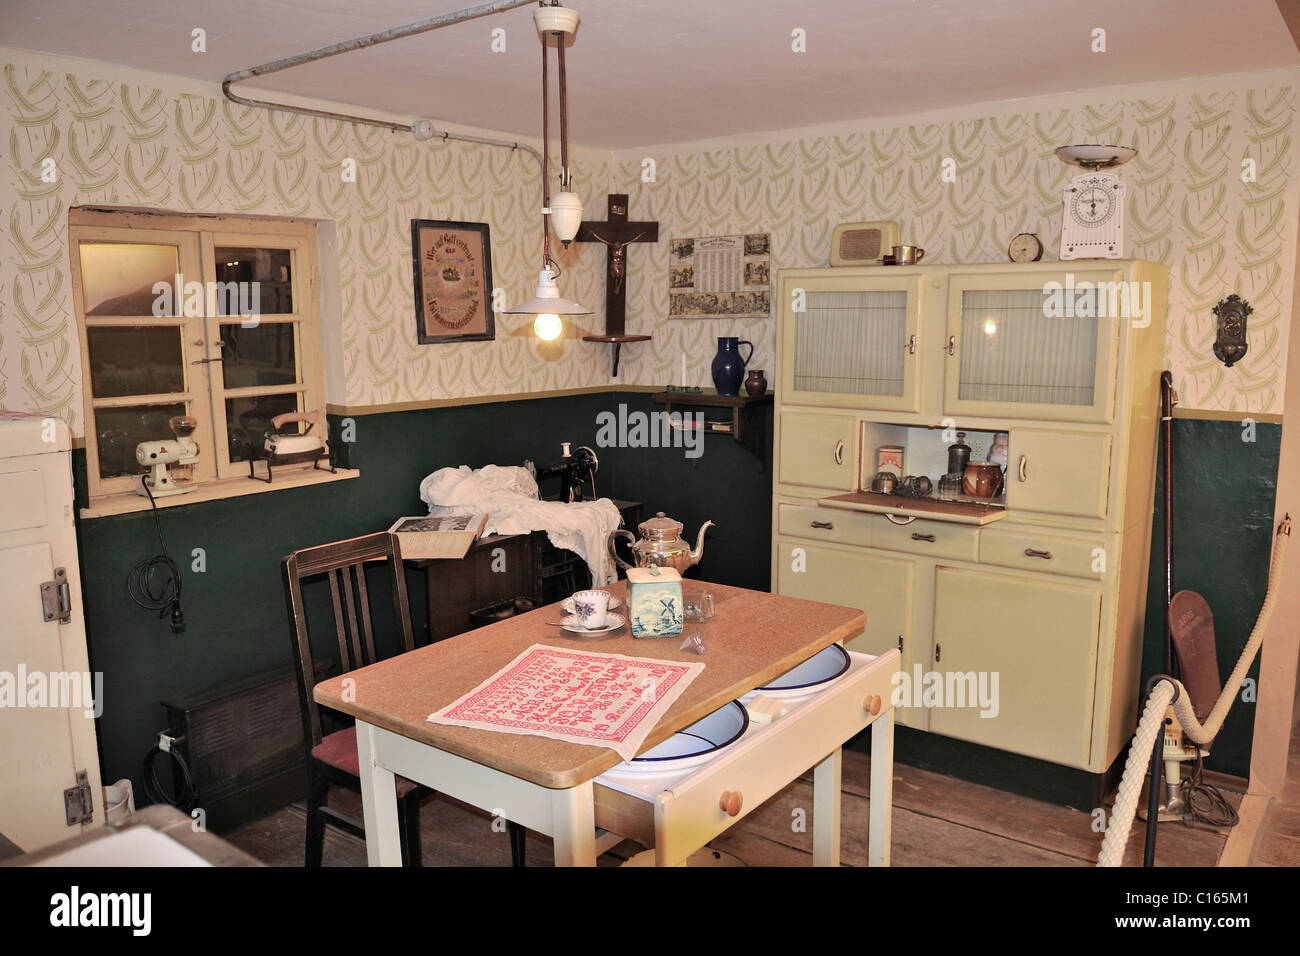 1950's style kitchen, Markus Wasmeier Farm and Winter Sport Museum, Schliersee Lake, Bavaria, Germany, Europe - Stock Image